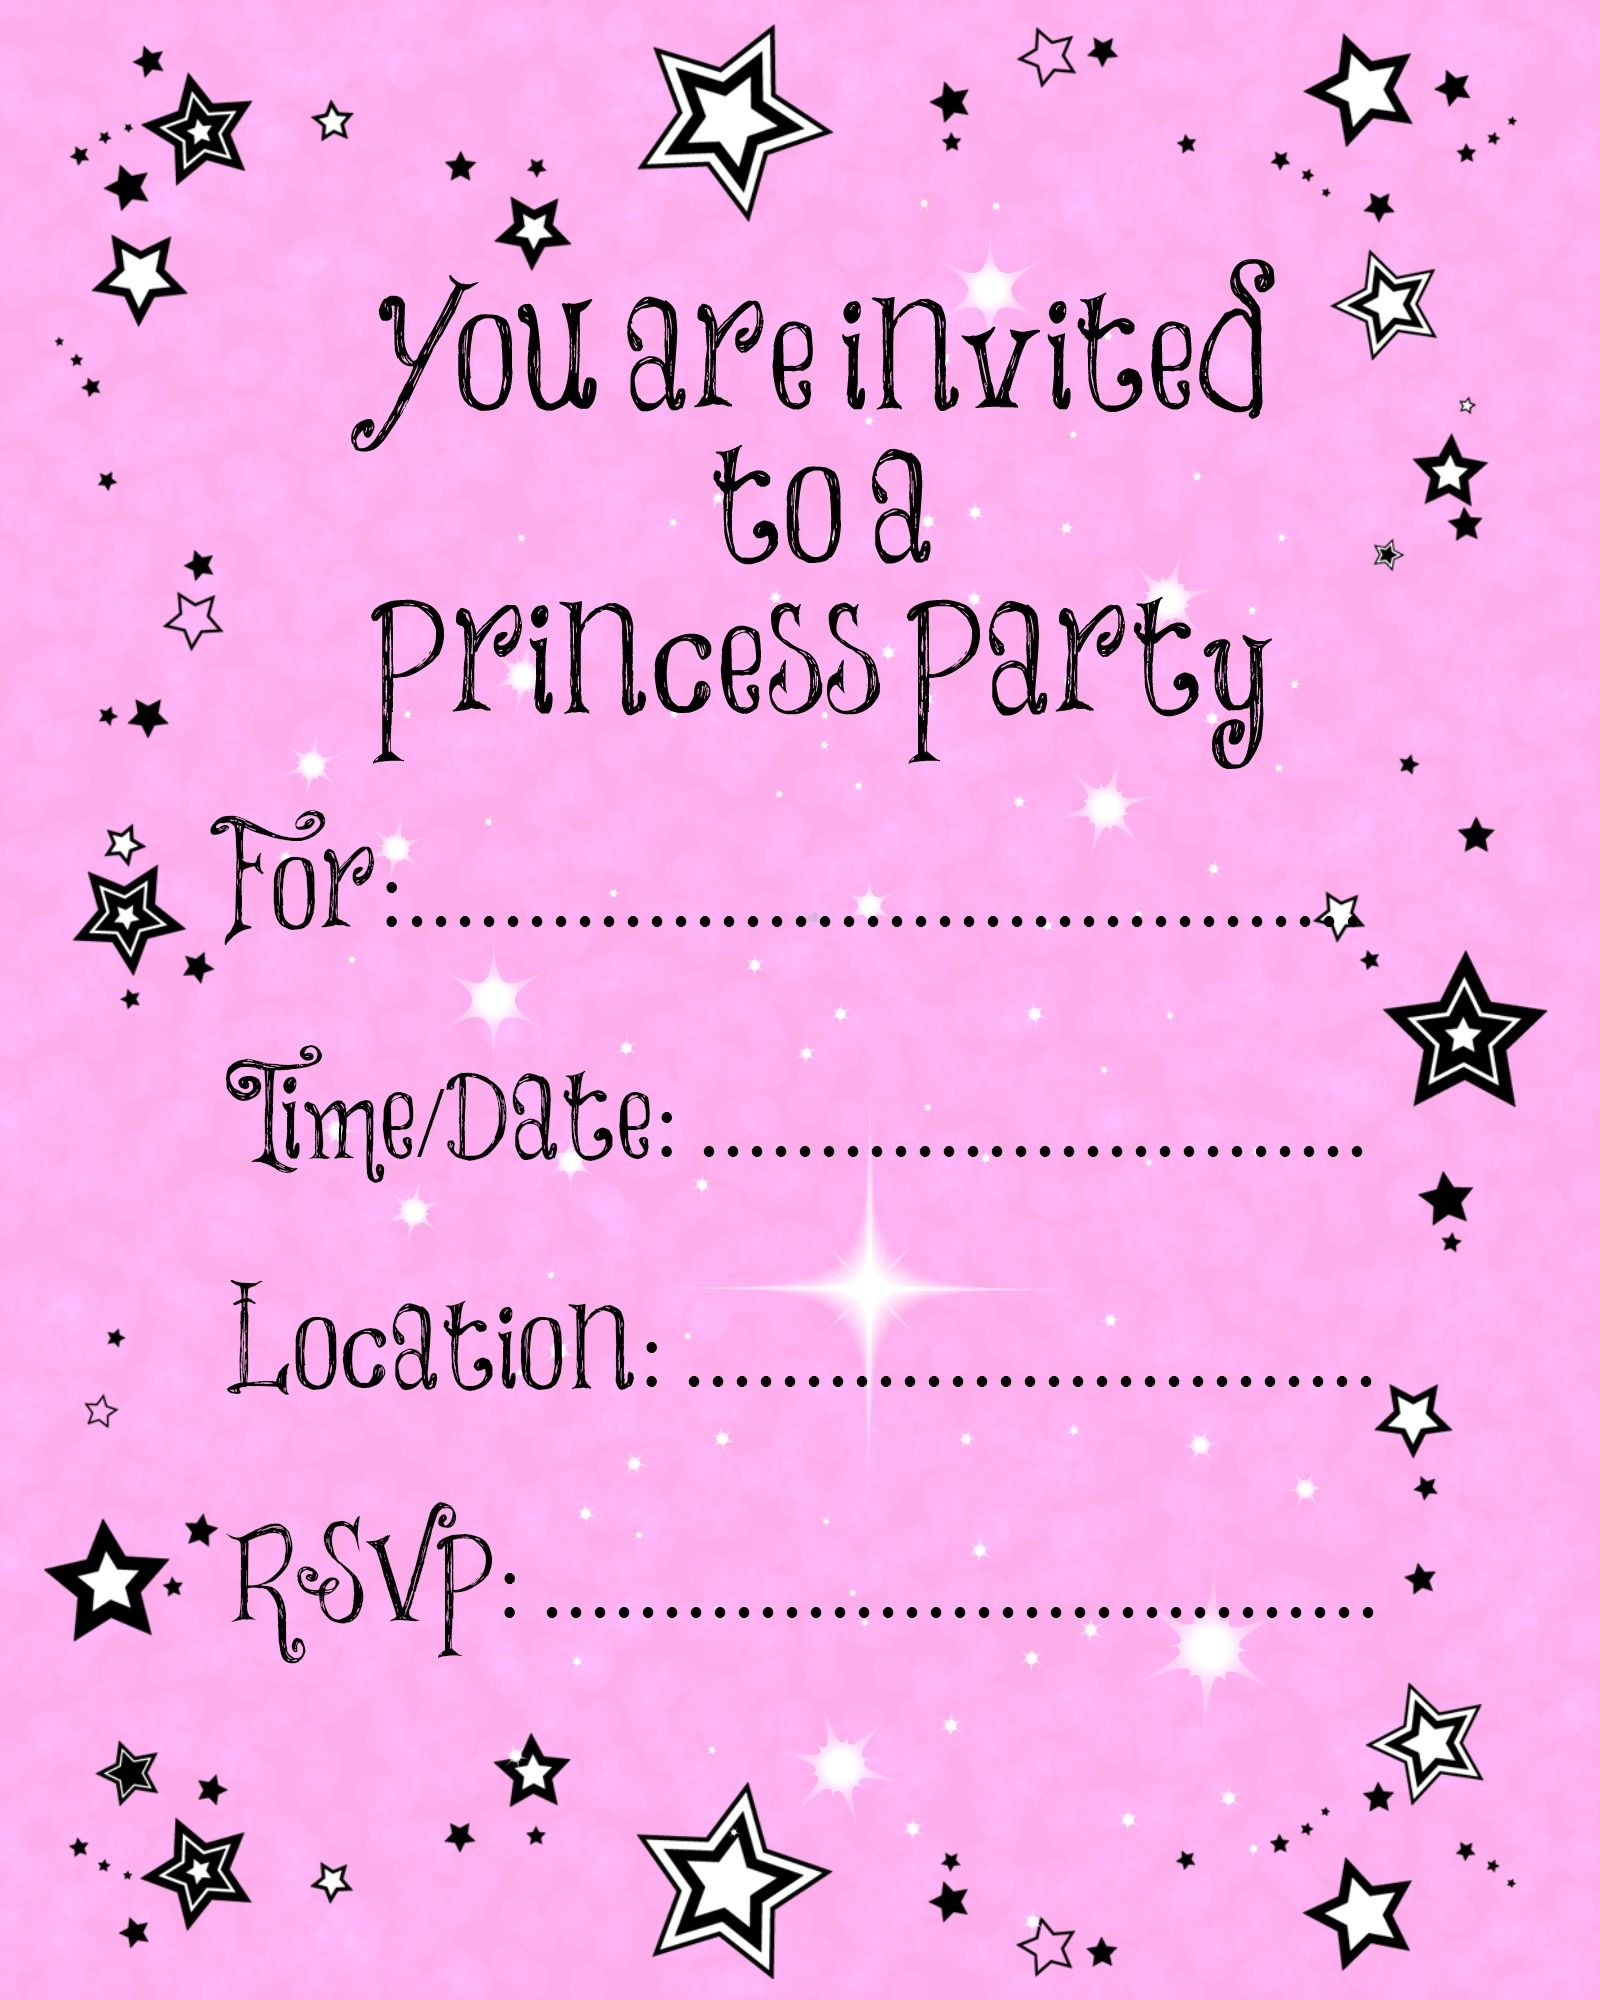 Free invitation card maker etamemibawa free invitation card maker bookmarktalkfo Choice Image